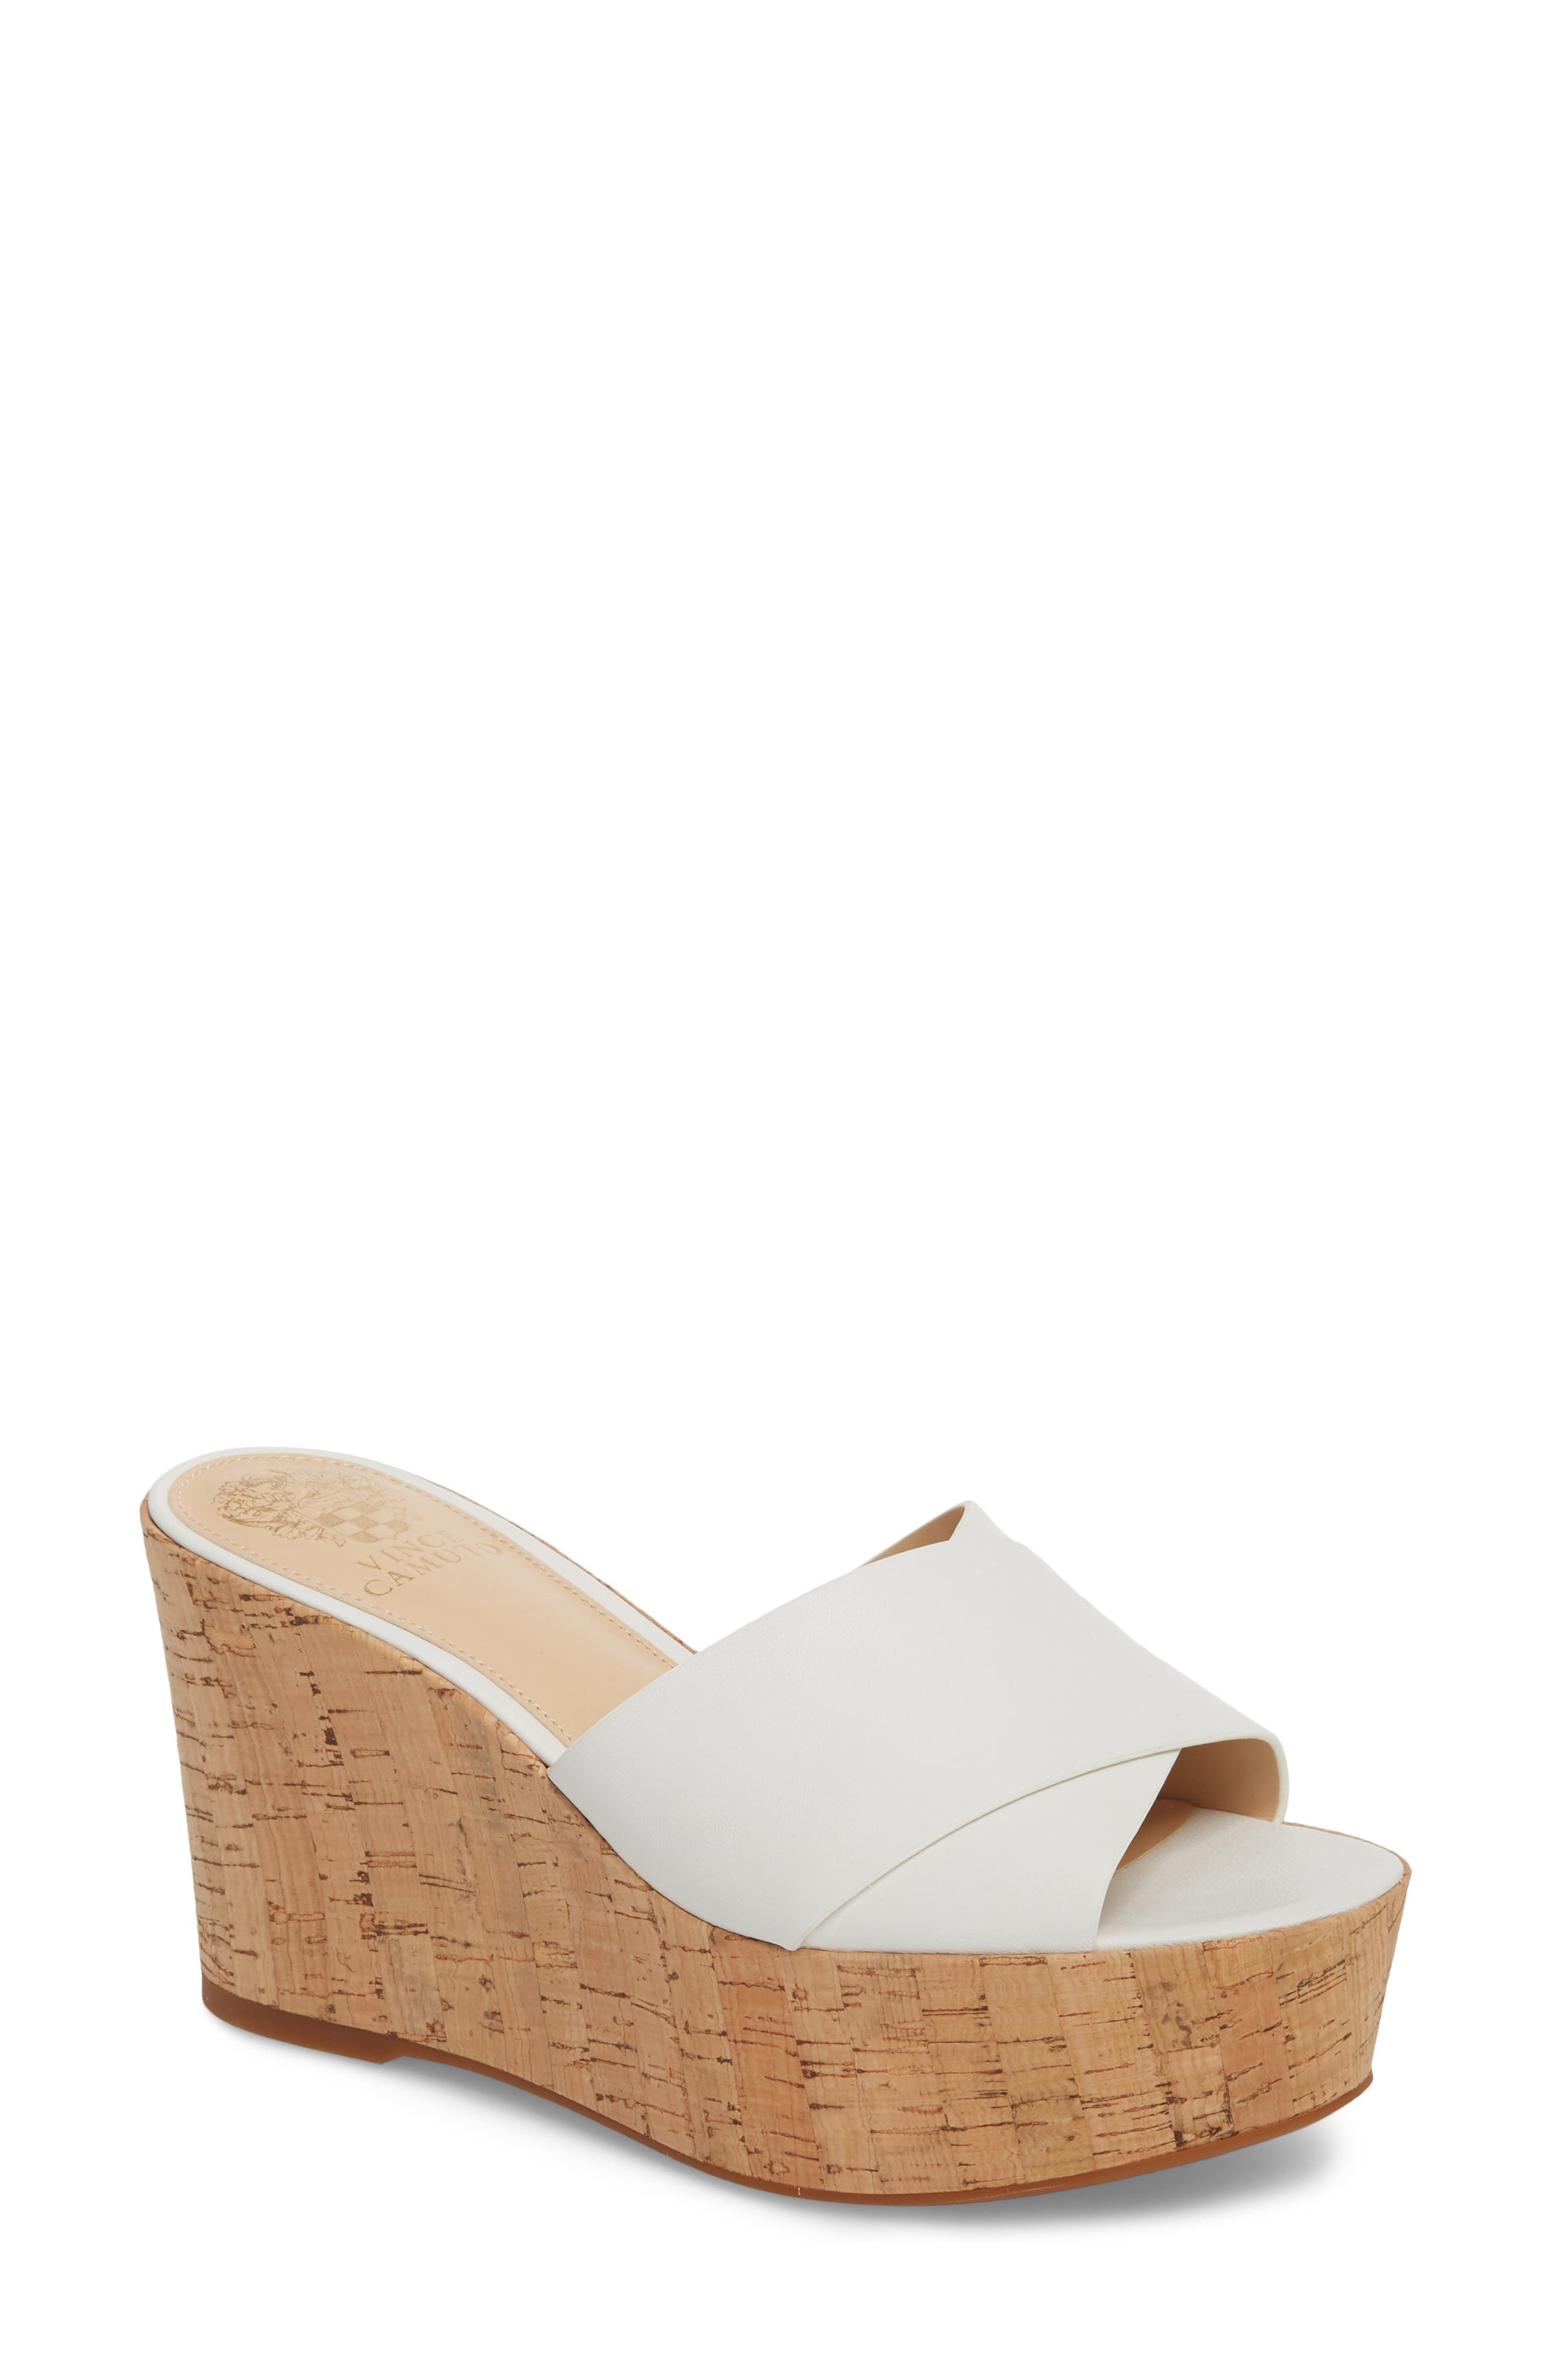 KESSINA PLATFORM WEDGE MULE